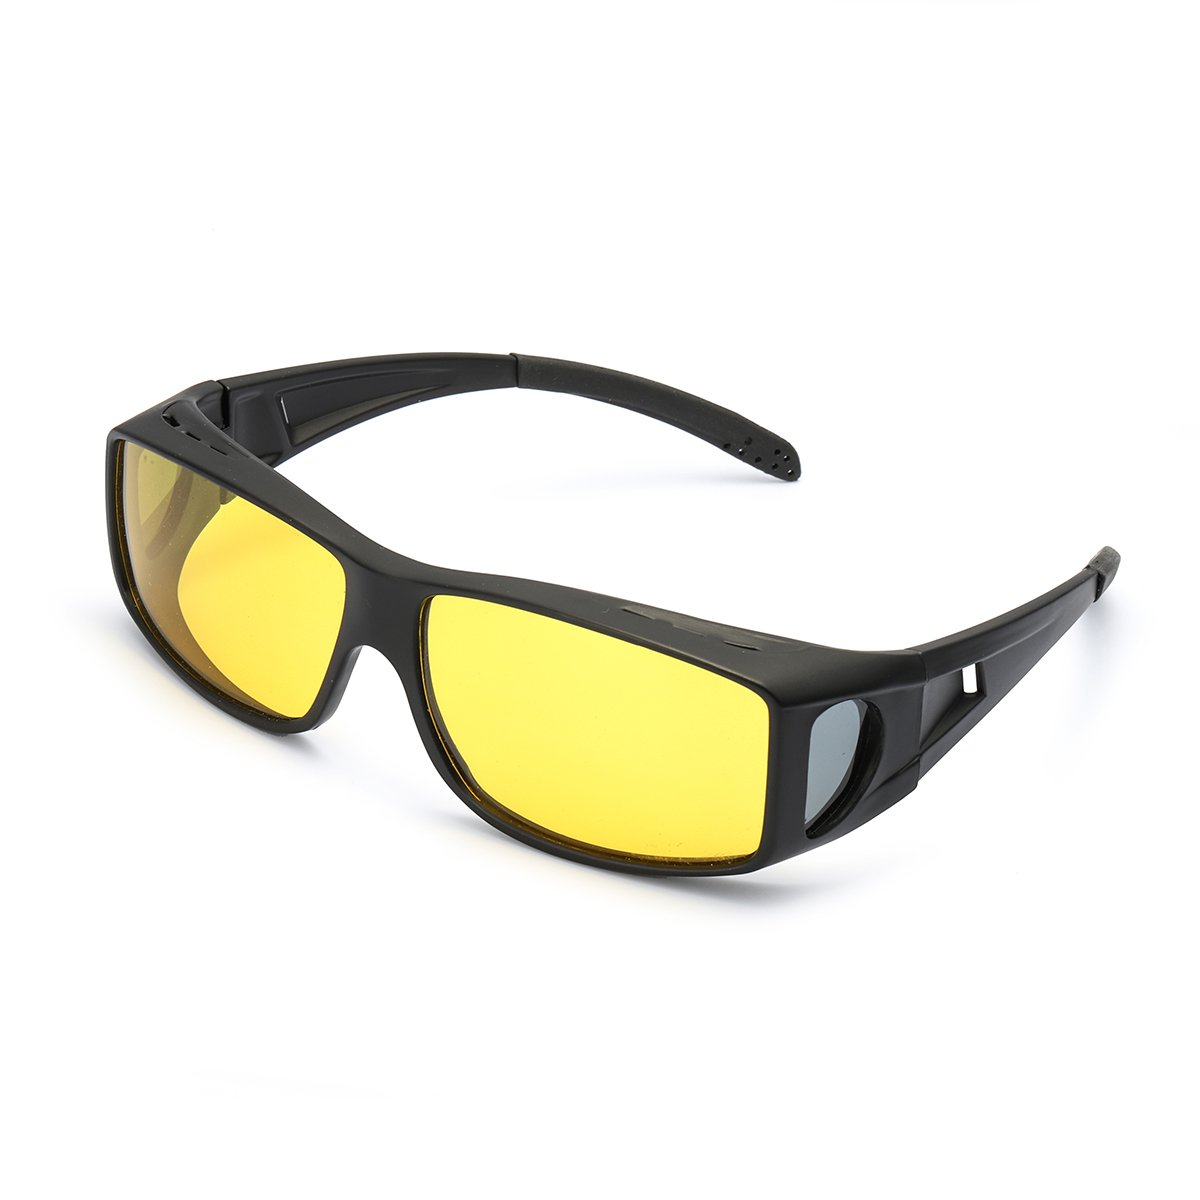 LVIOE Wrap Around Night Vision Glasses, Fit Over Prescription Glasses with HD Polarized Yellow Lens Night Driving Glasses Yellow)